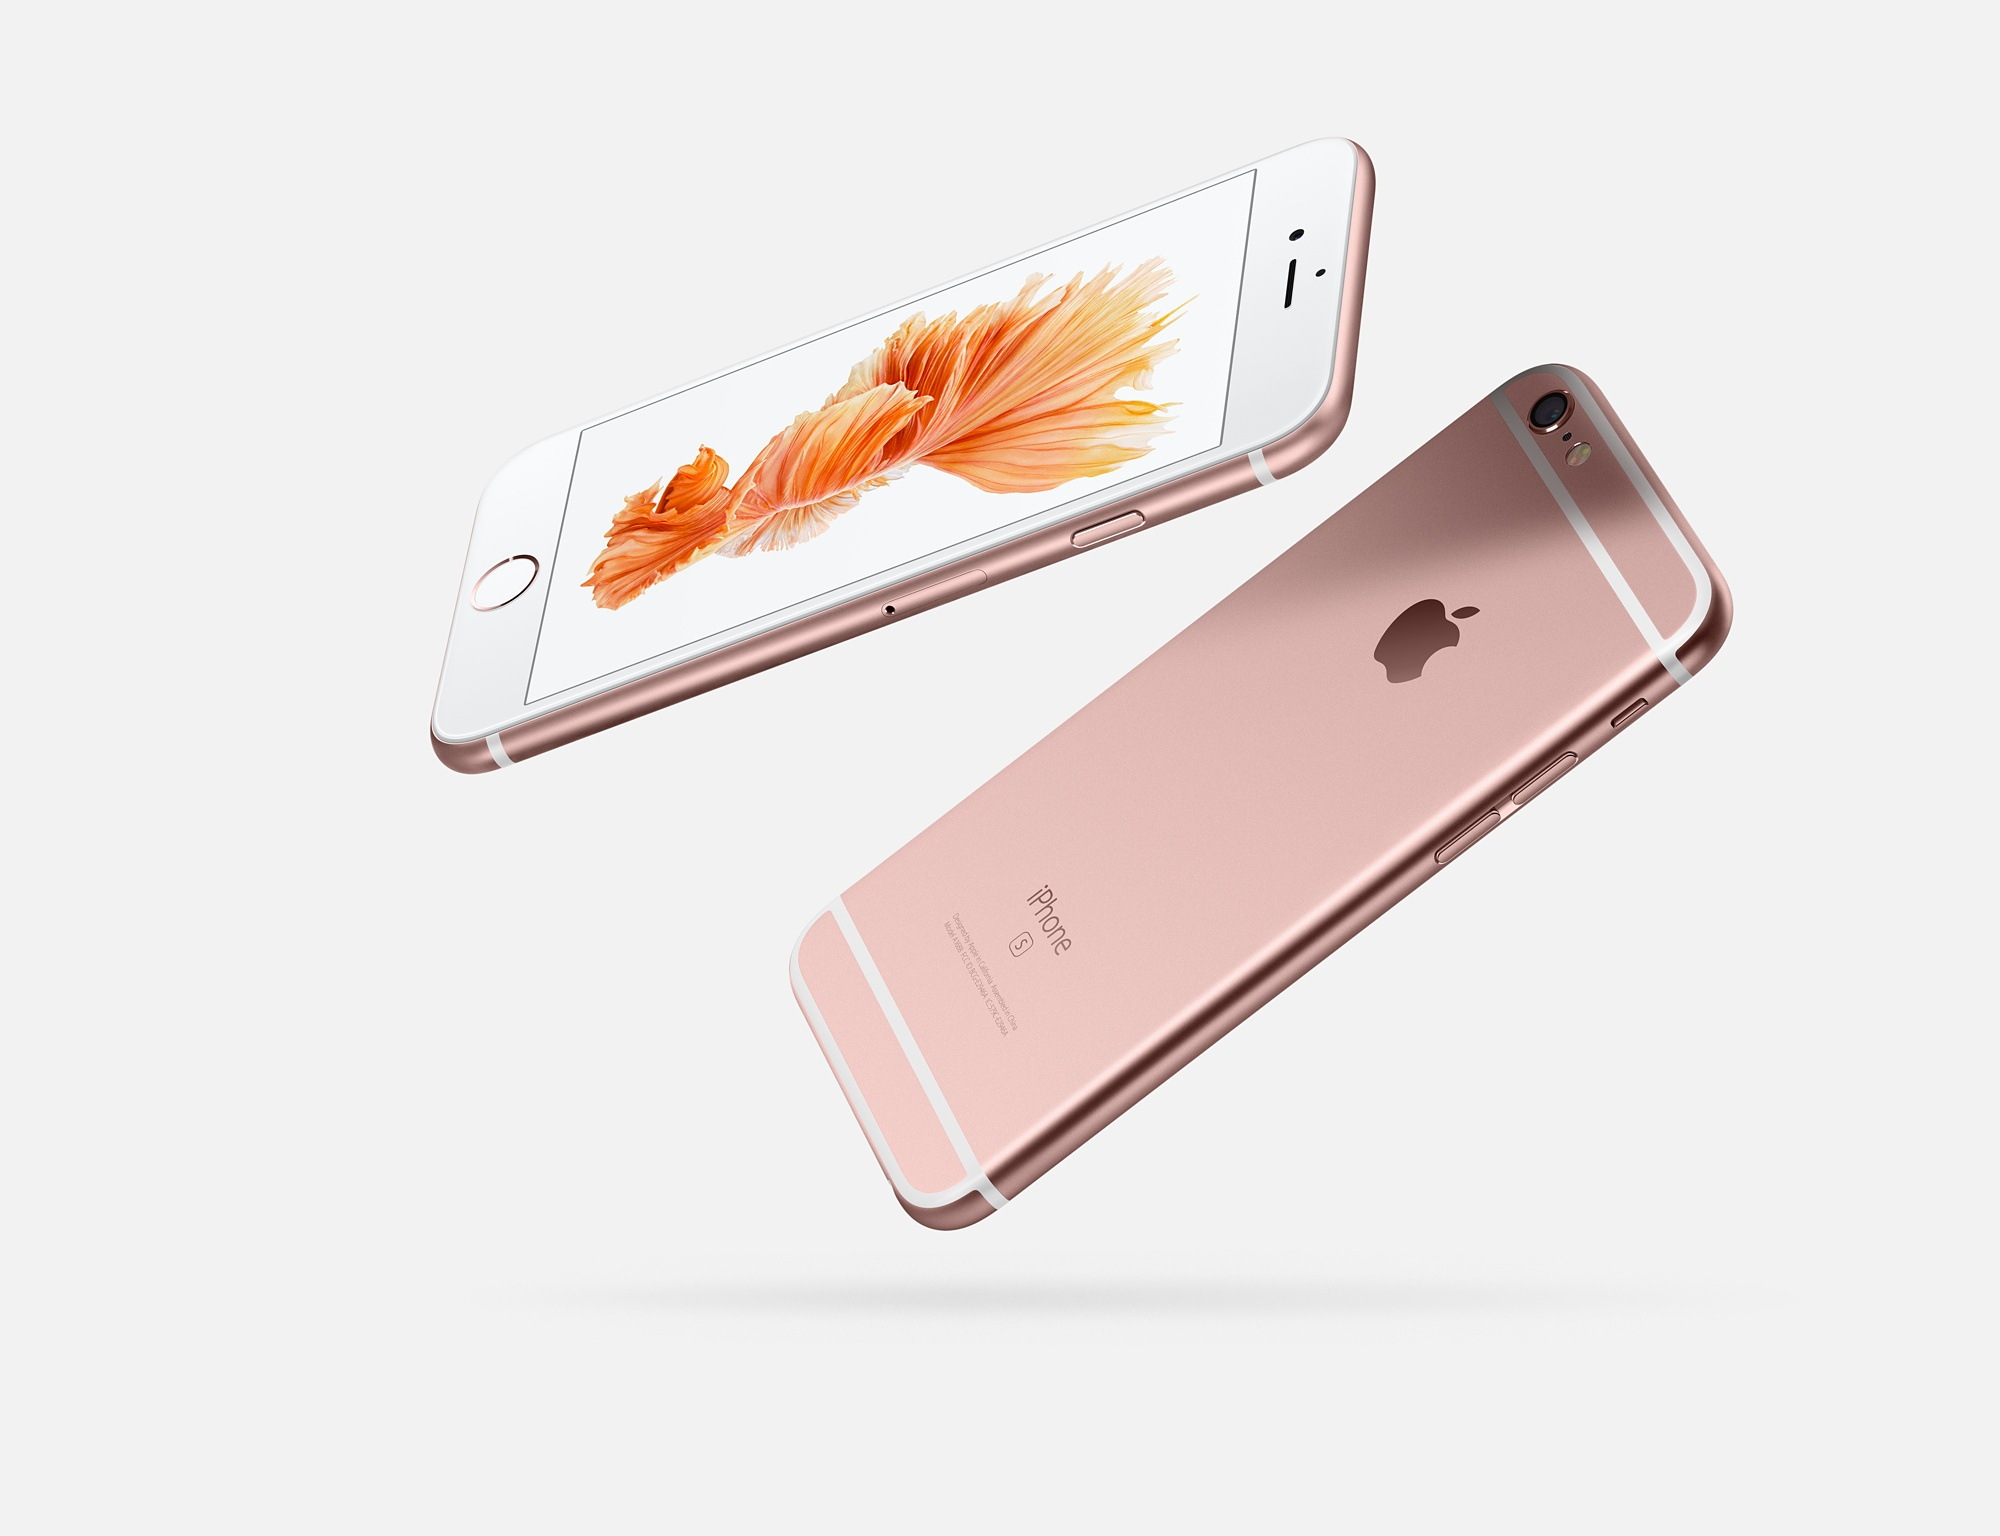 iphone-6s-users-can-opt-for-battery-replacement